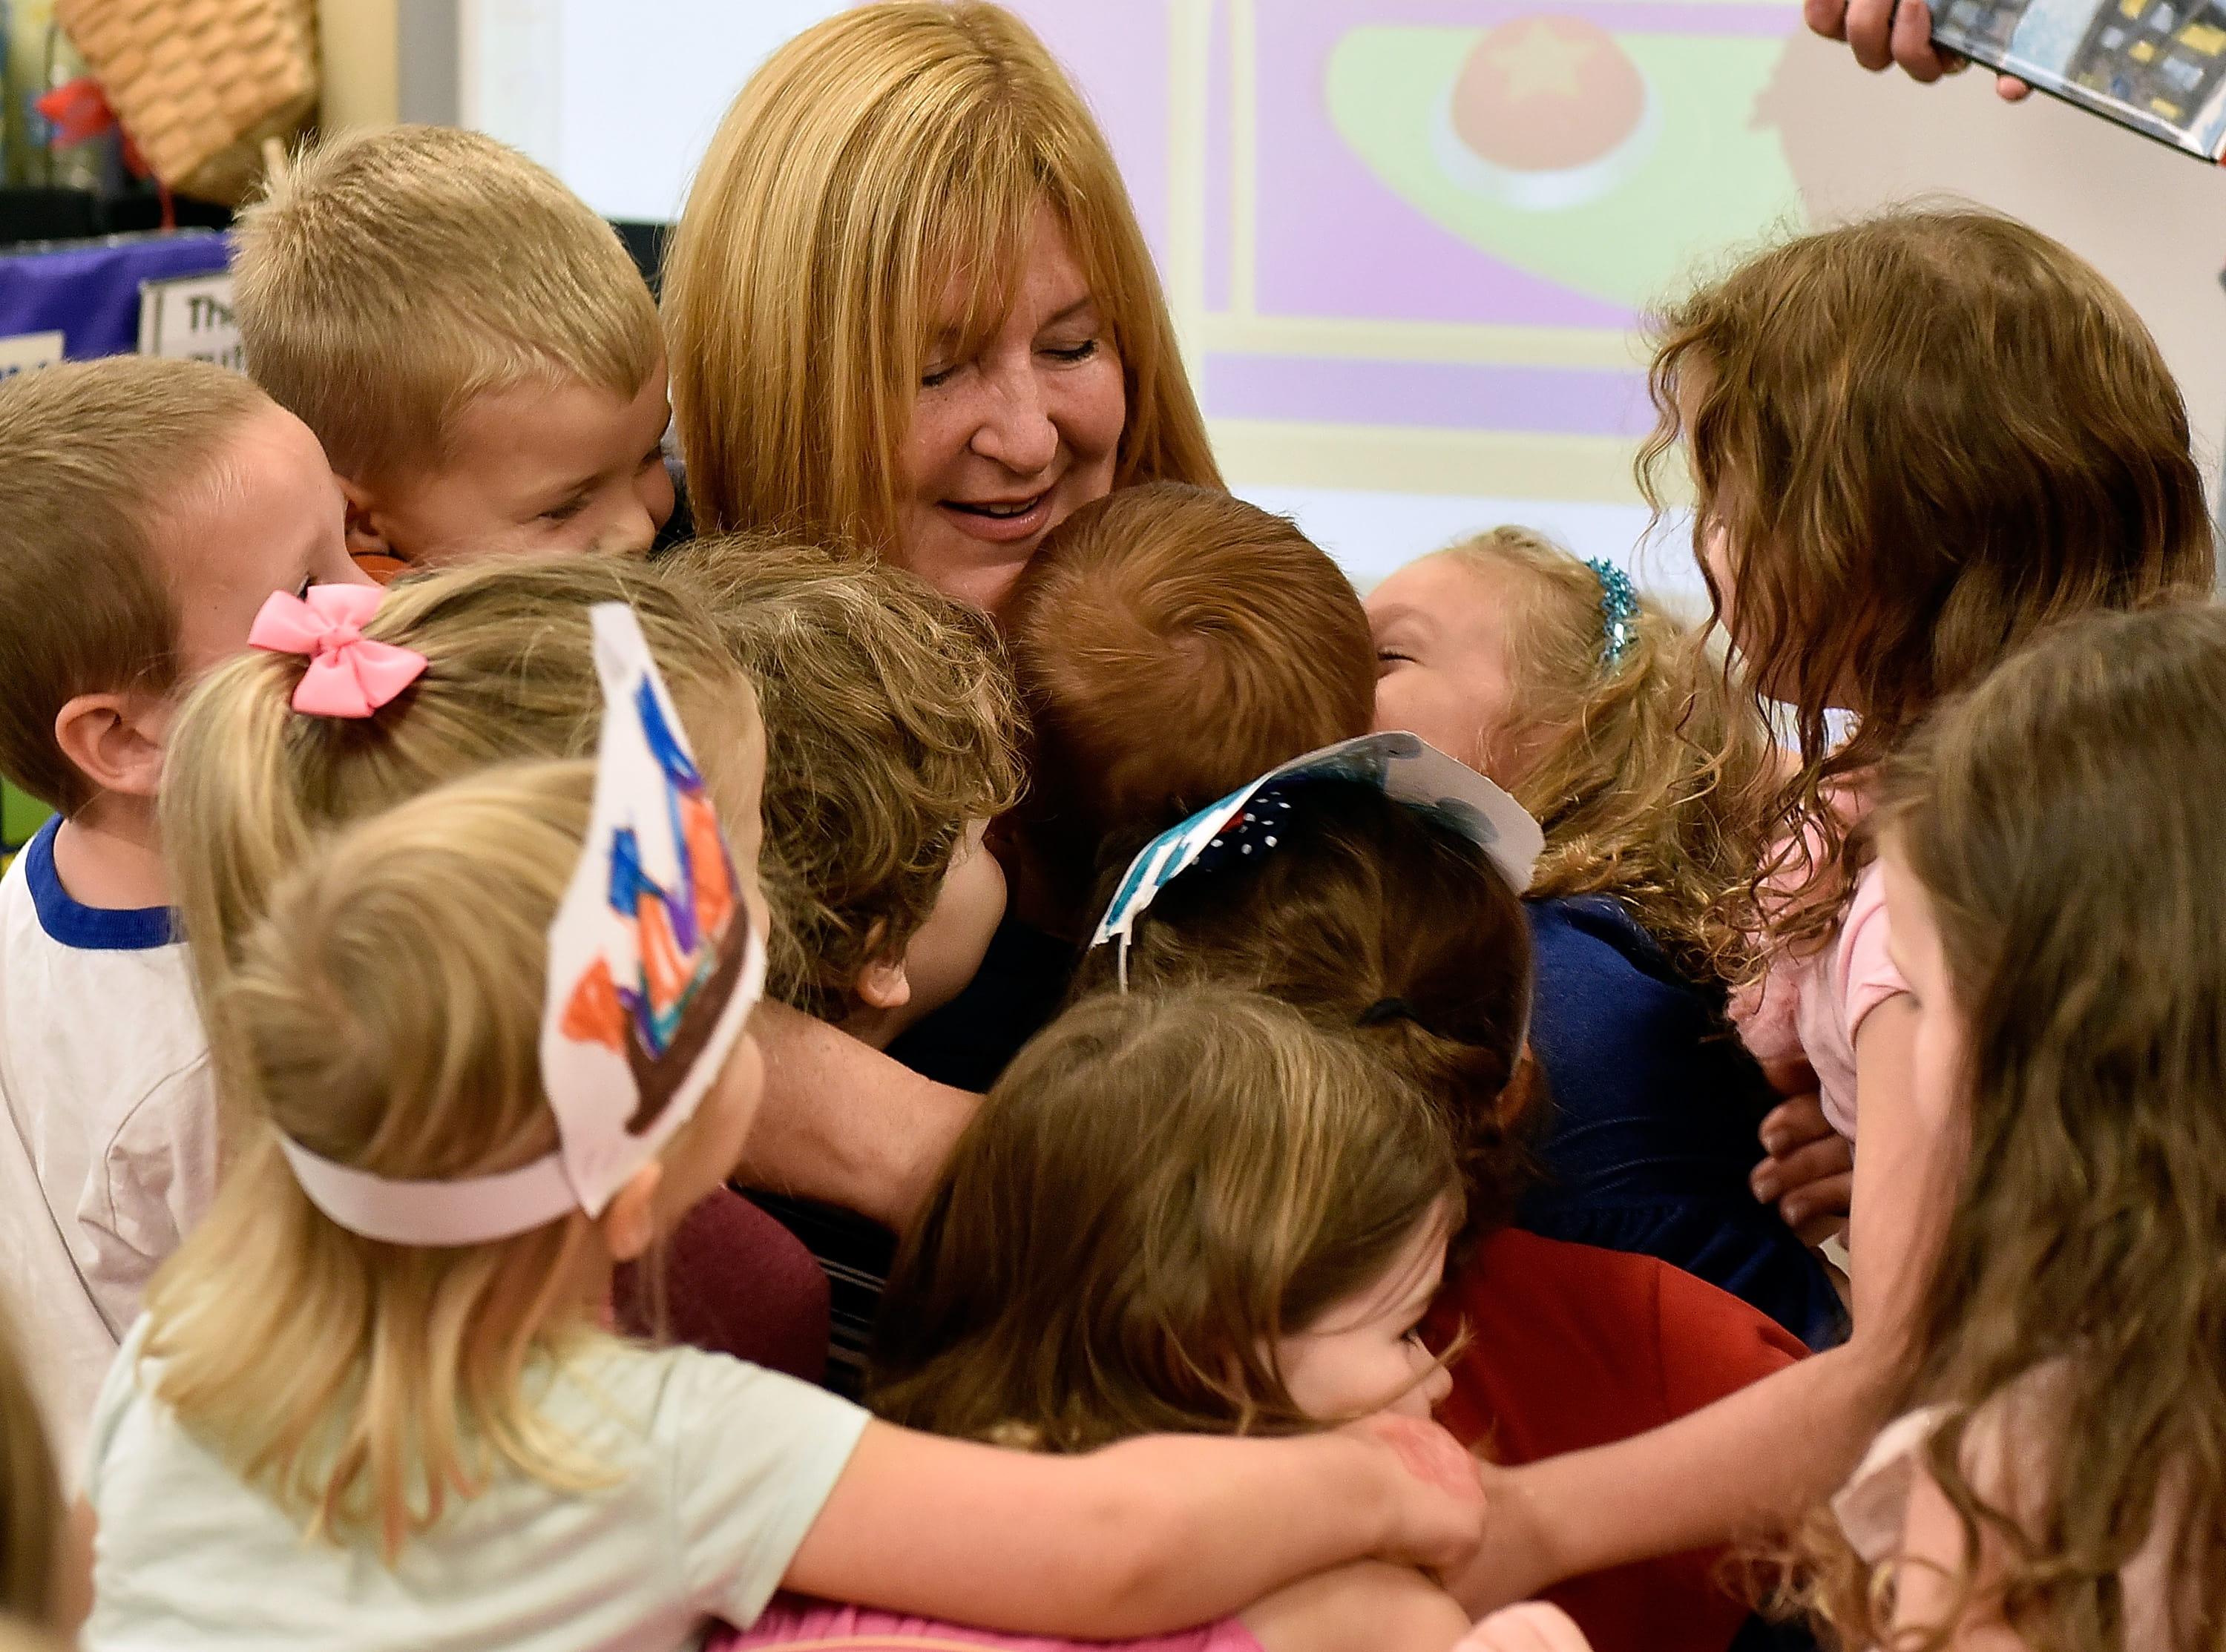 After winning an Early Childhood Educator Award, preK teacher Sue Davies was engulfed by warm hugs. Photo by Getty Images